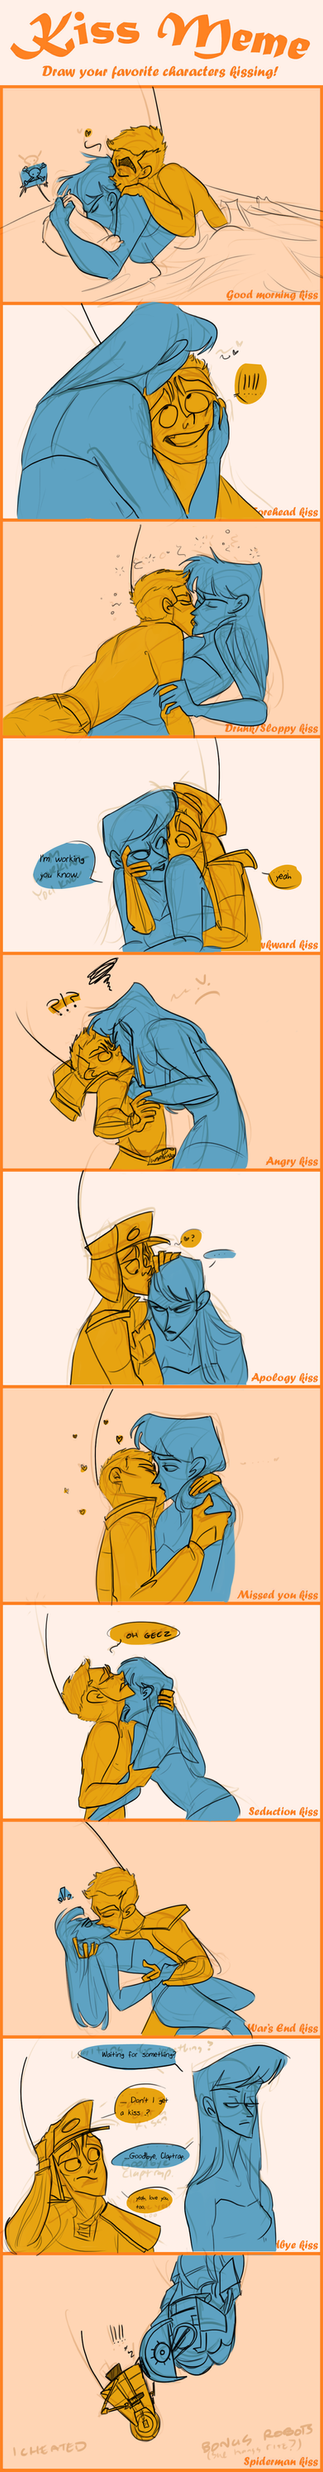 Stupid dumb idiot kiss meme ClapDOS by Wolf-Shadow77